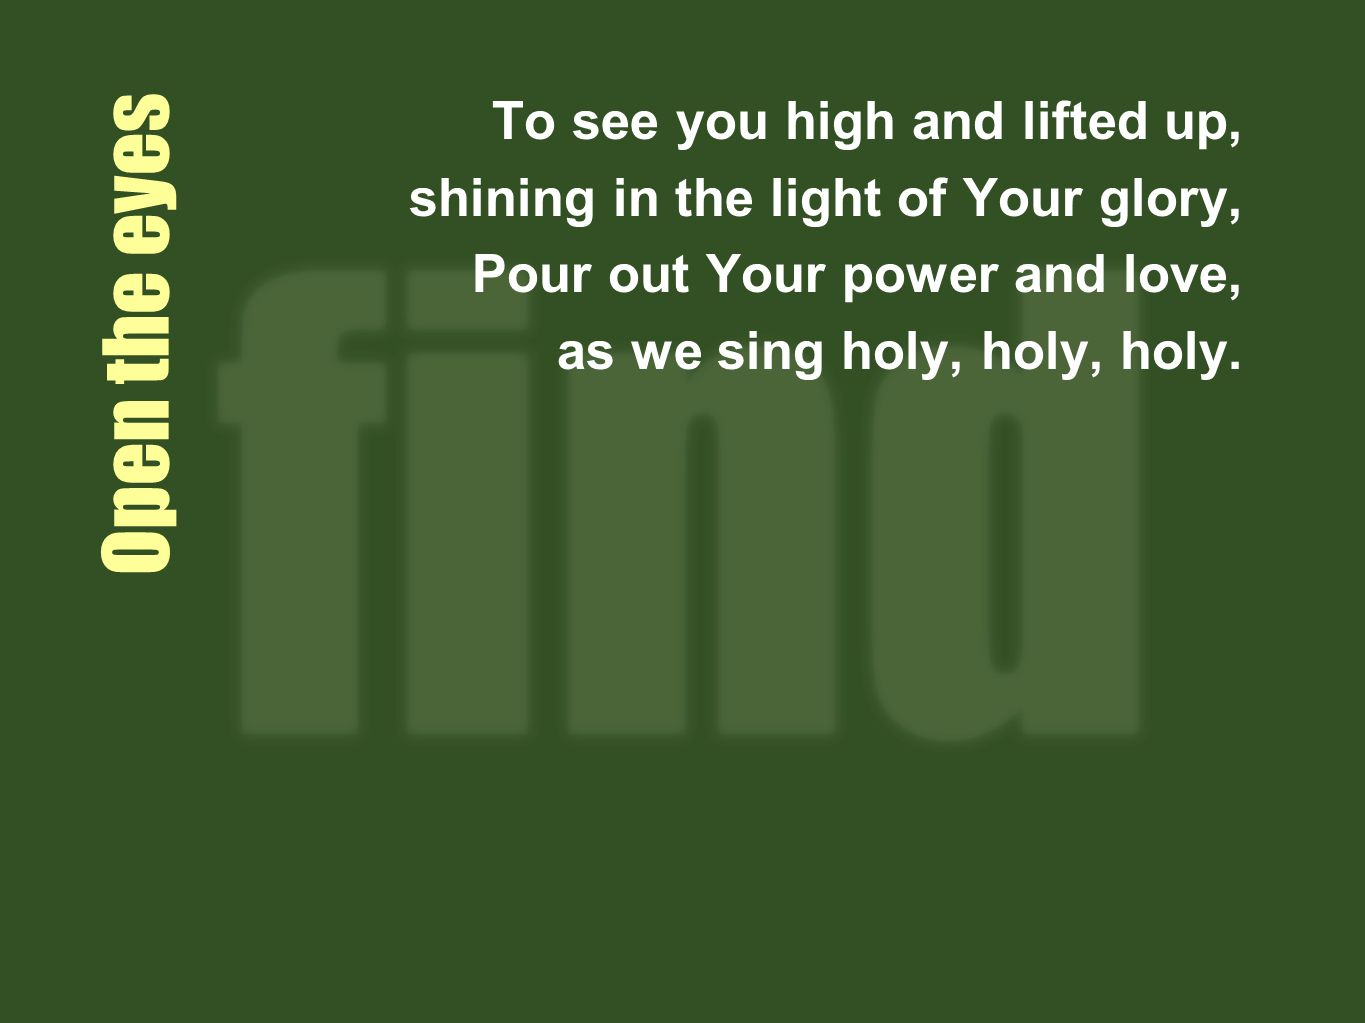 Open the eyes To see you high and lifted up, shining in the light of Your glory, Pour out Your power and love, as we sing holy, holy, holy.